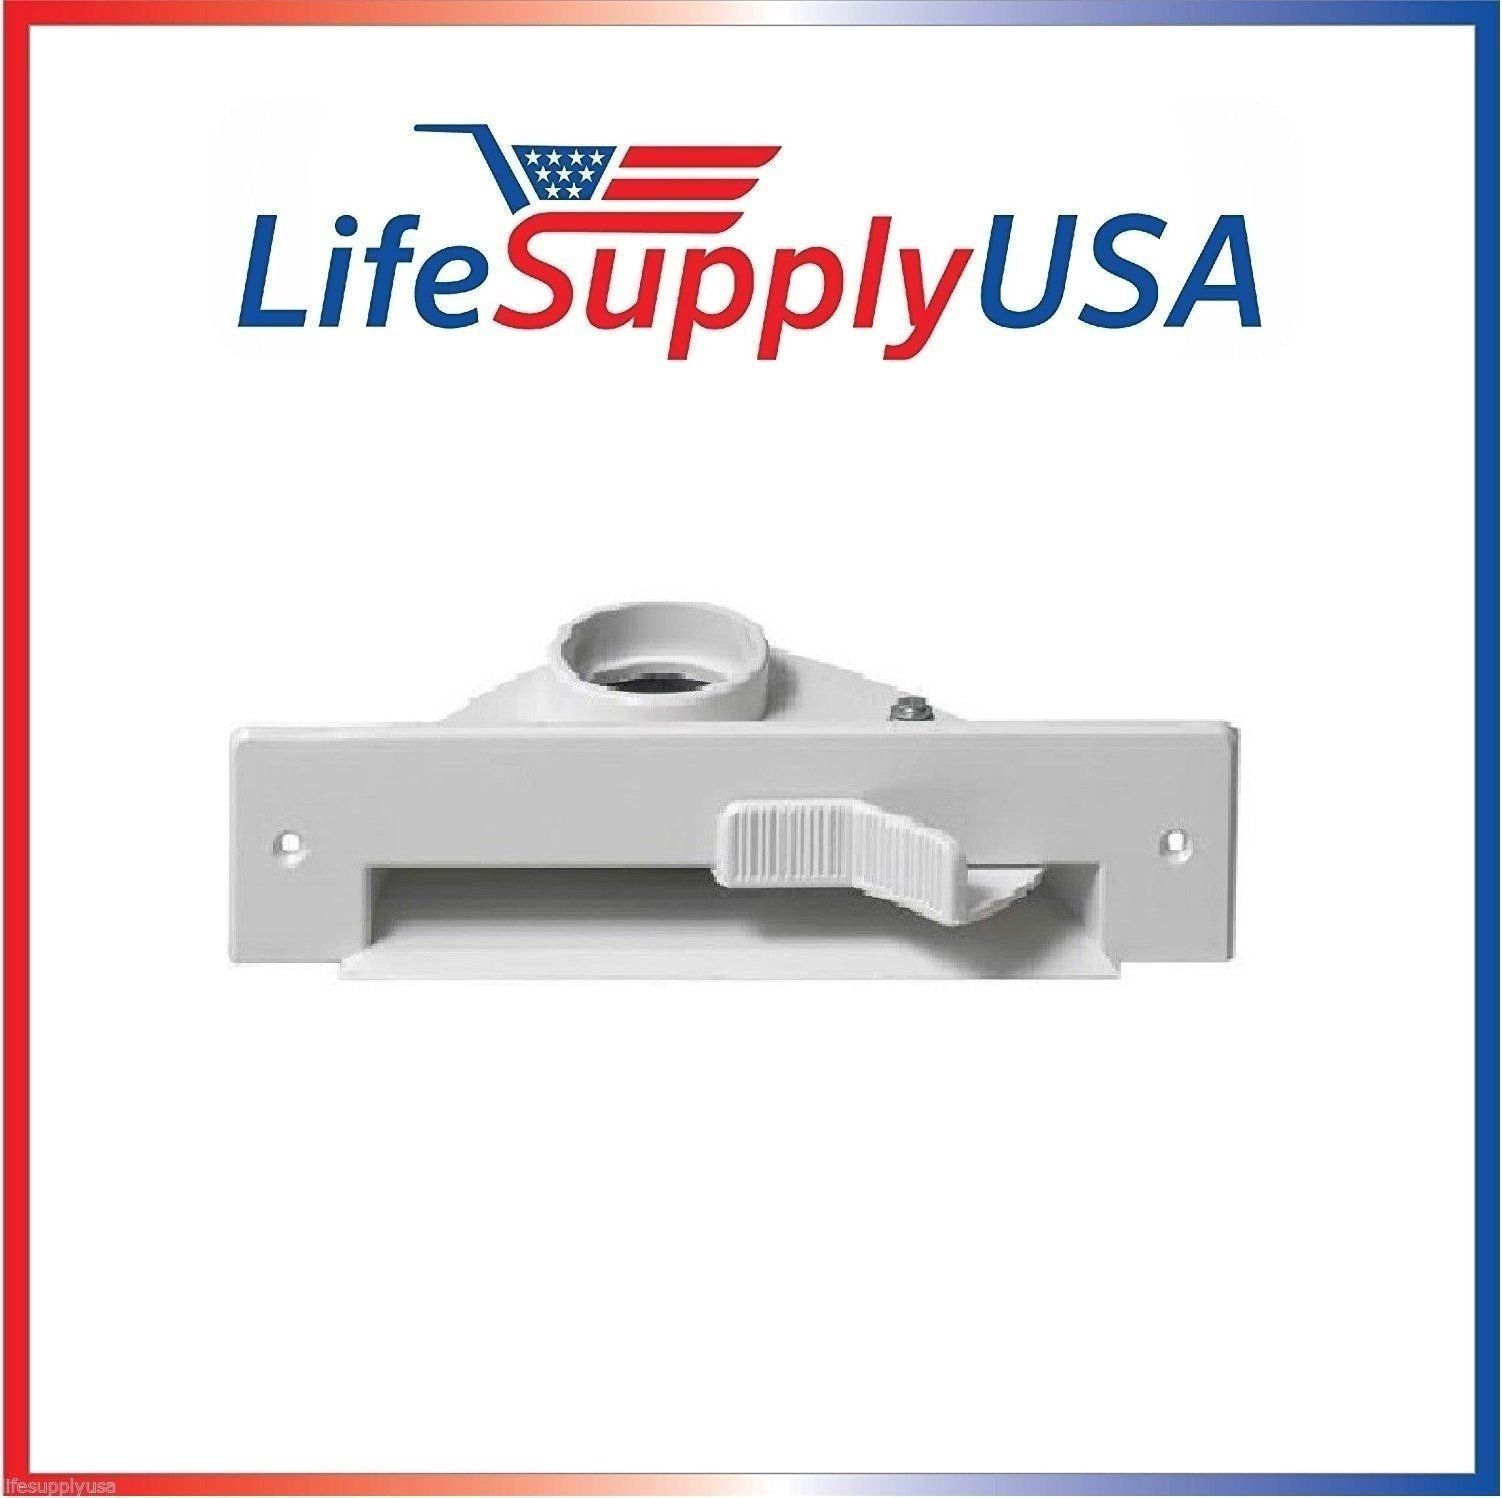 Lifesupplyusa 50 New Central Vac Pan Vacuum Automatic Dustpan Sweep Inlet Valves In White By Click Image For More Details Vacuums Floor Care Vacuum Cleaner